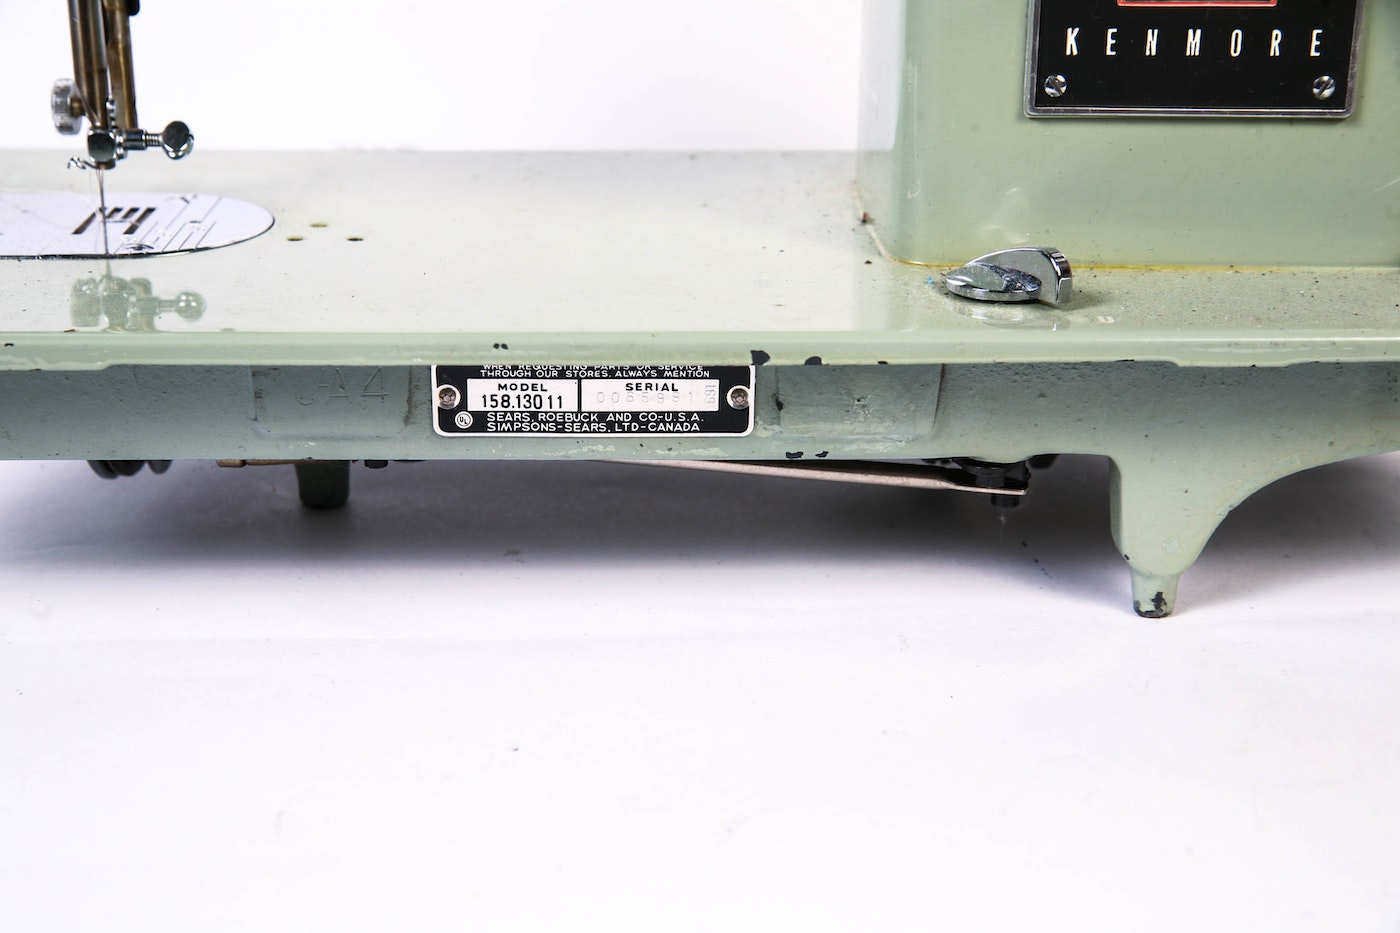 manual kenmore solid state sewing machine model 158